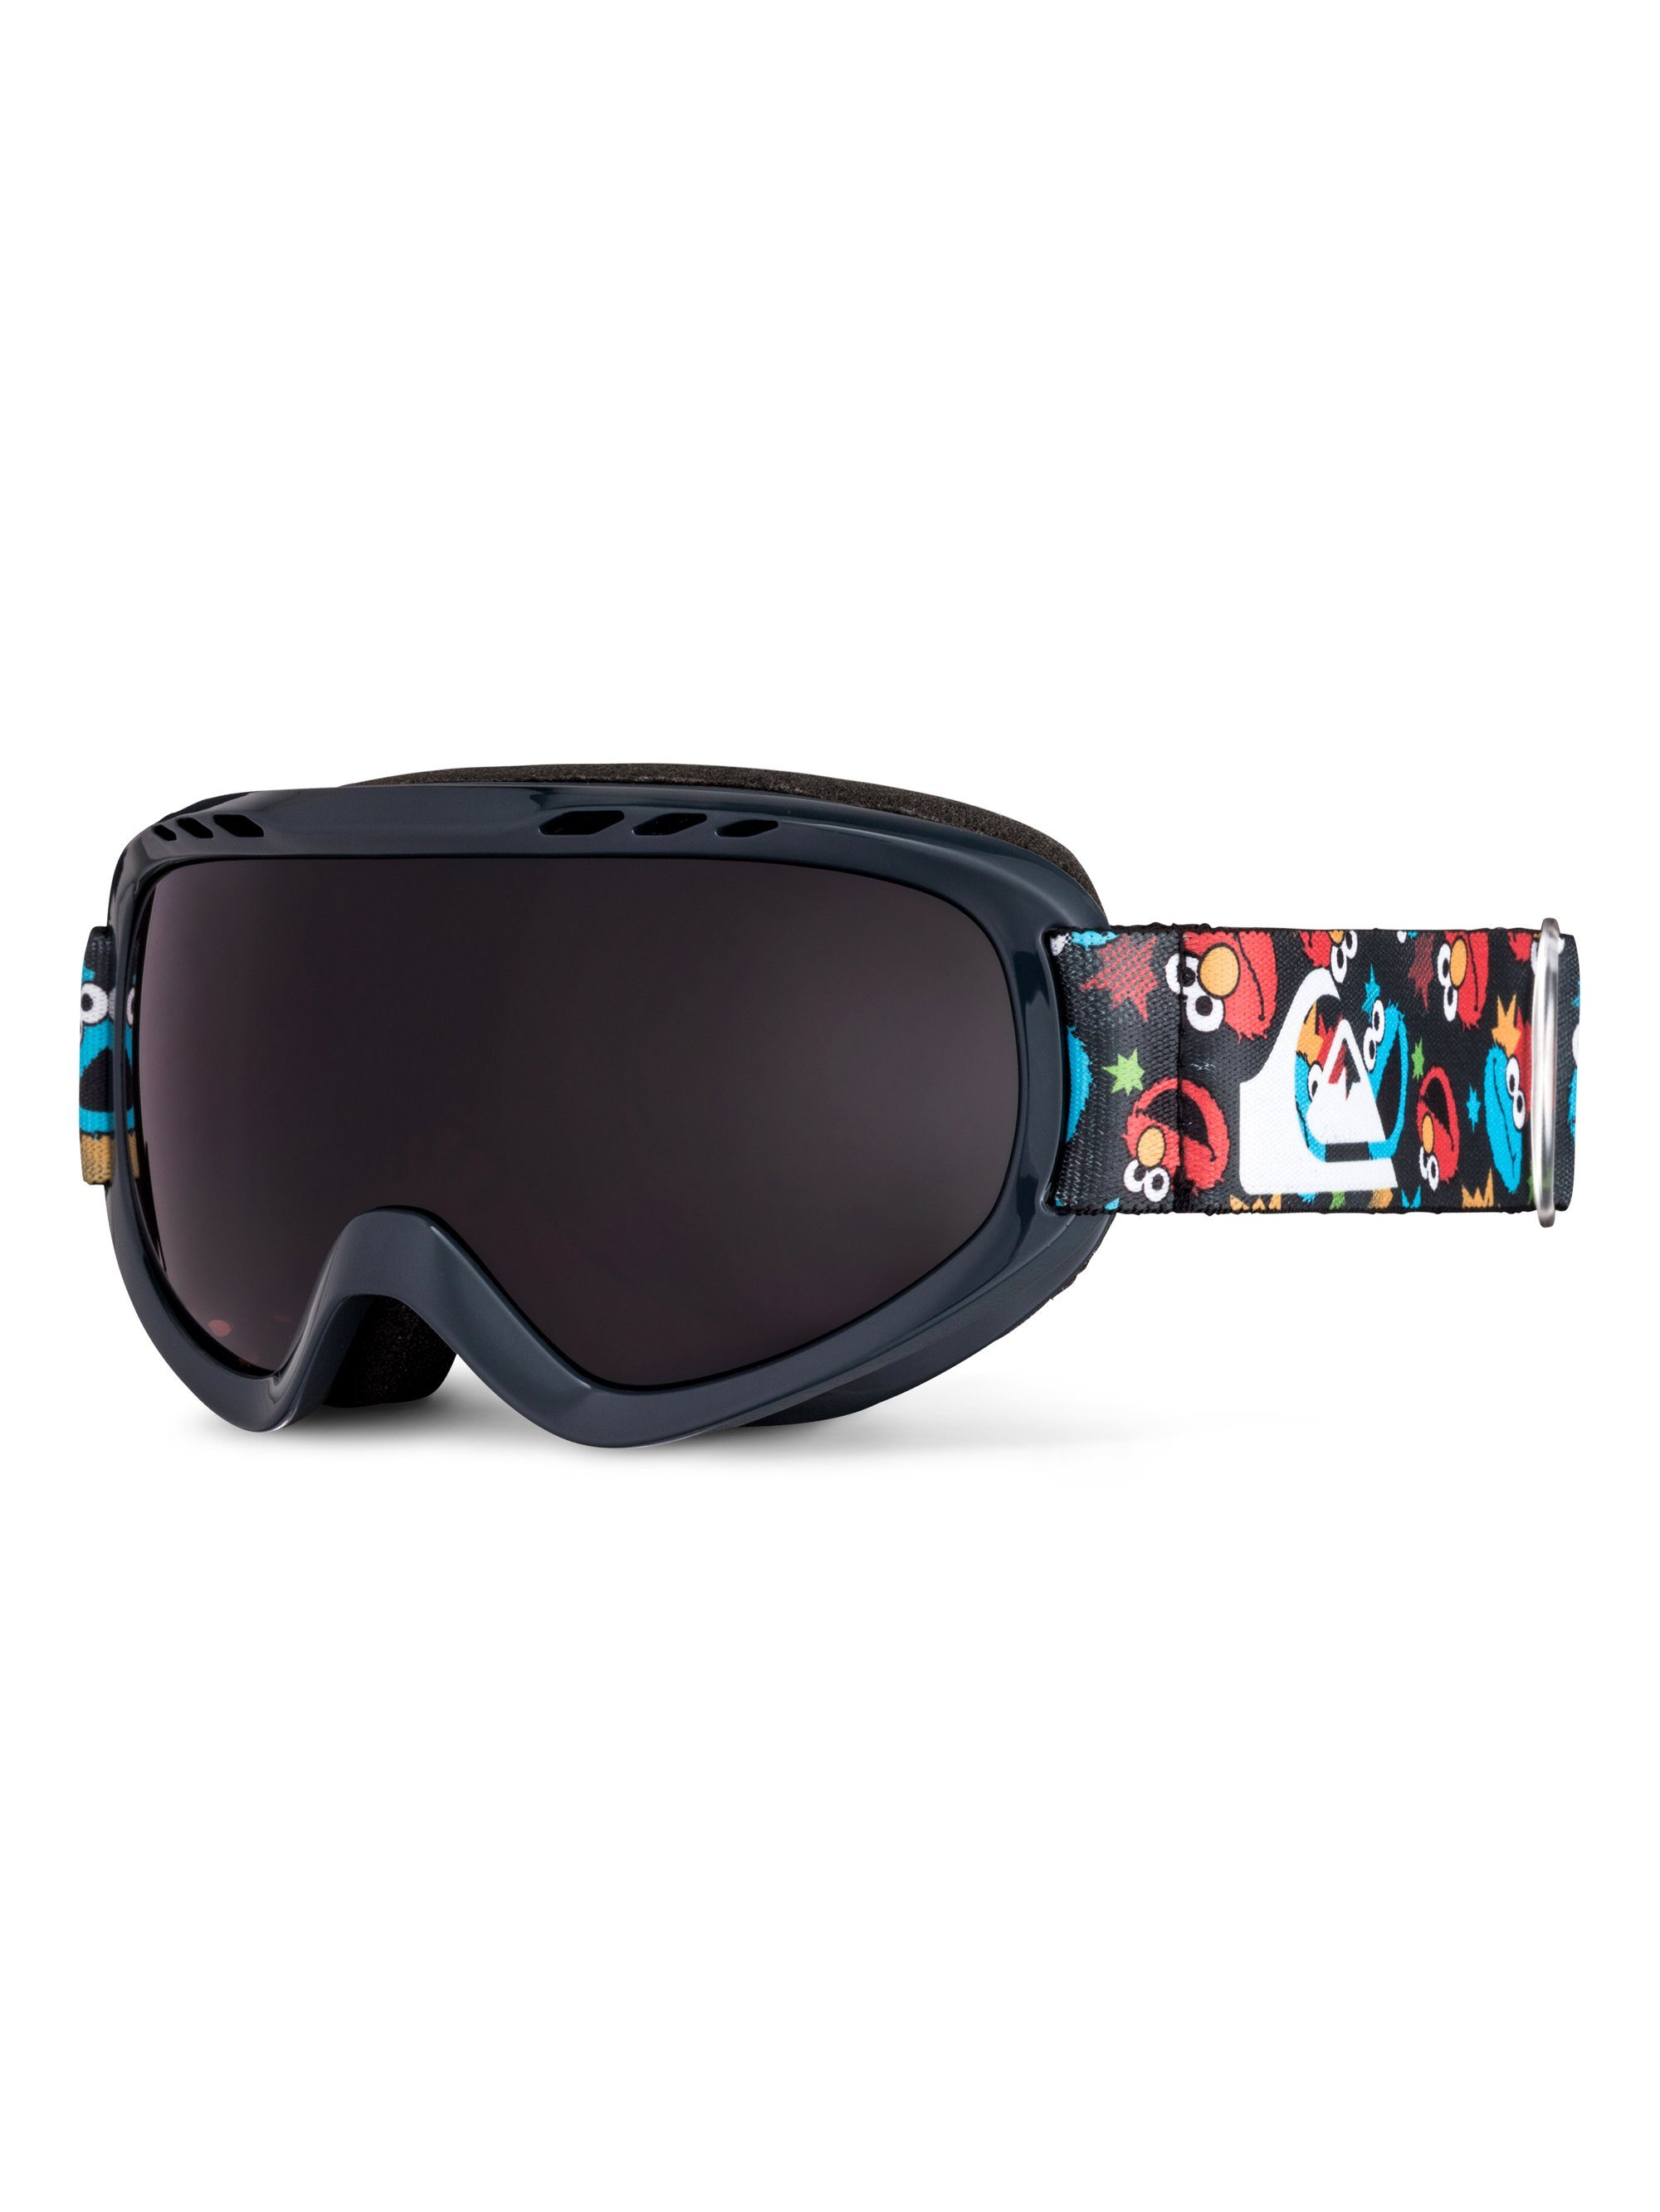 Quiksilver Goggle »Flake«